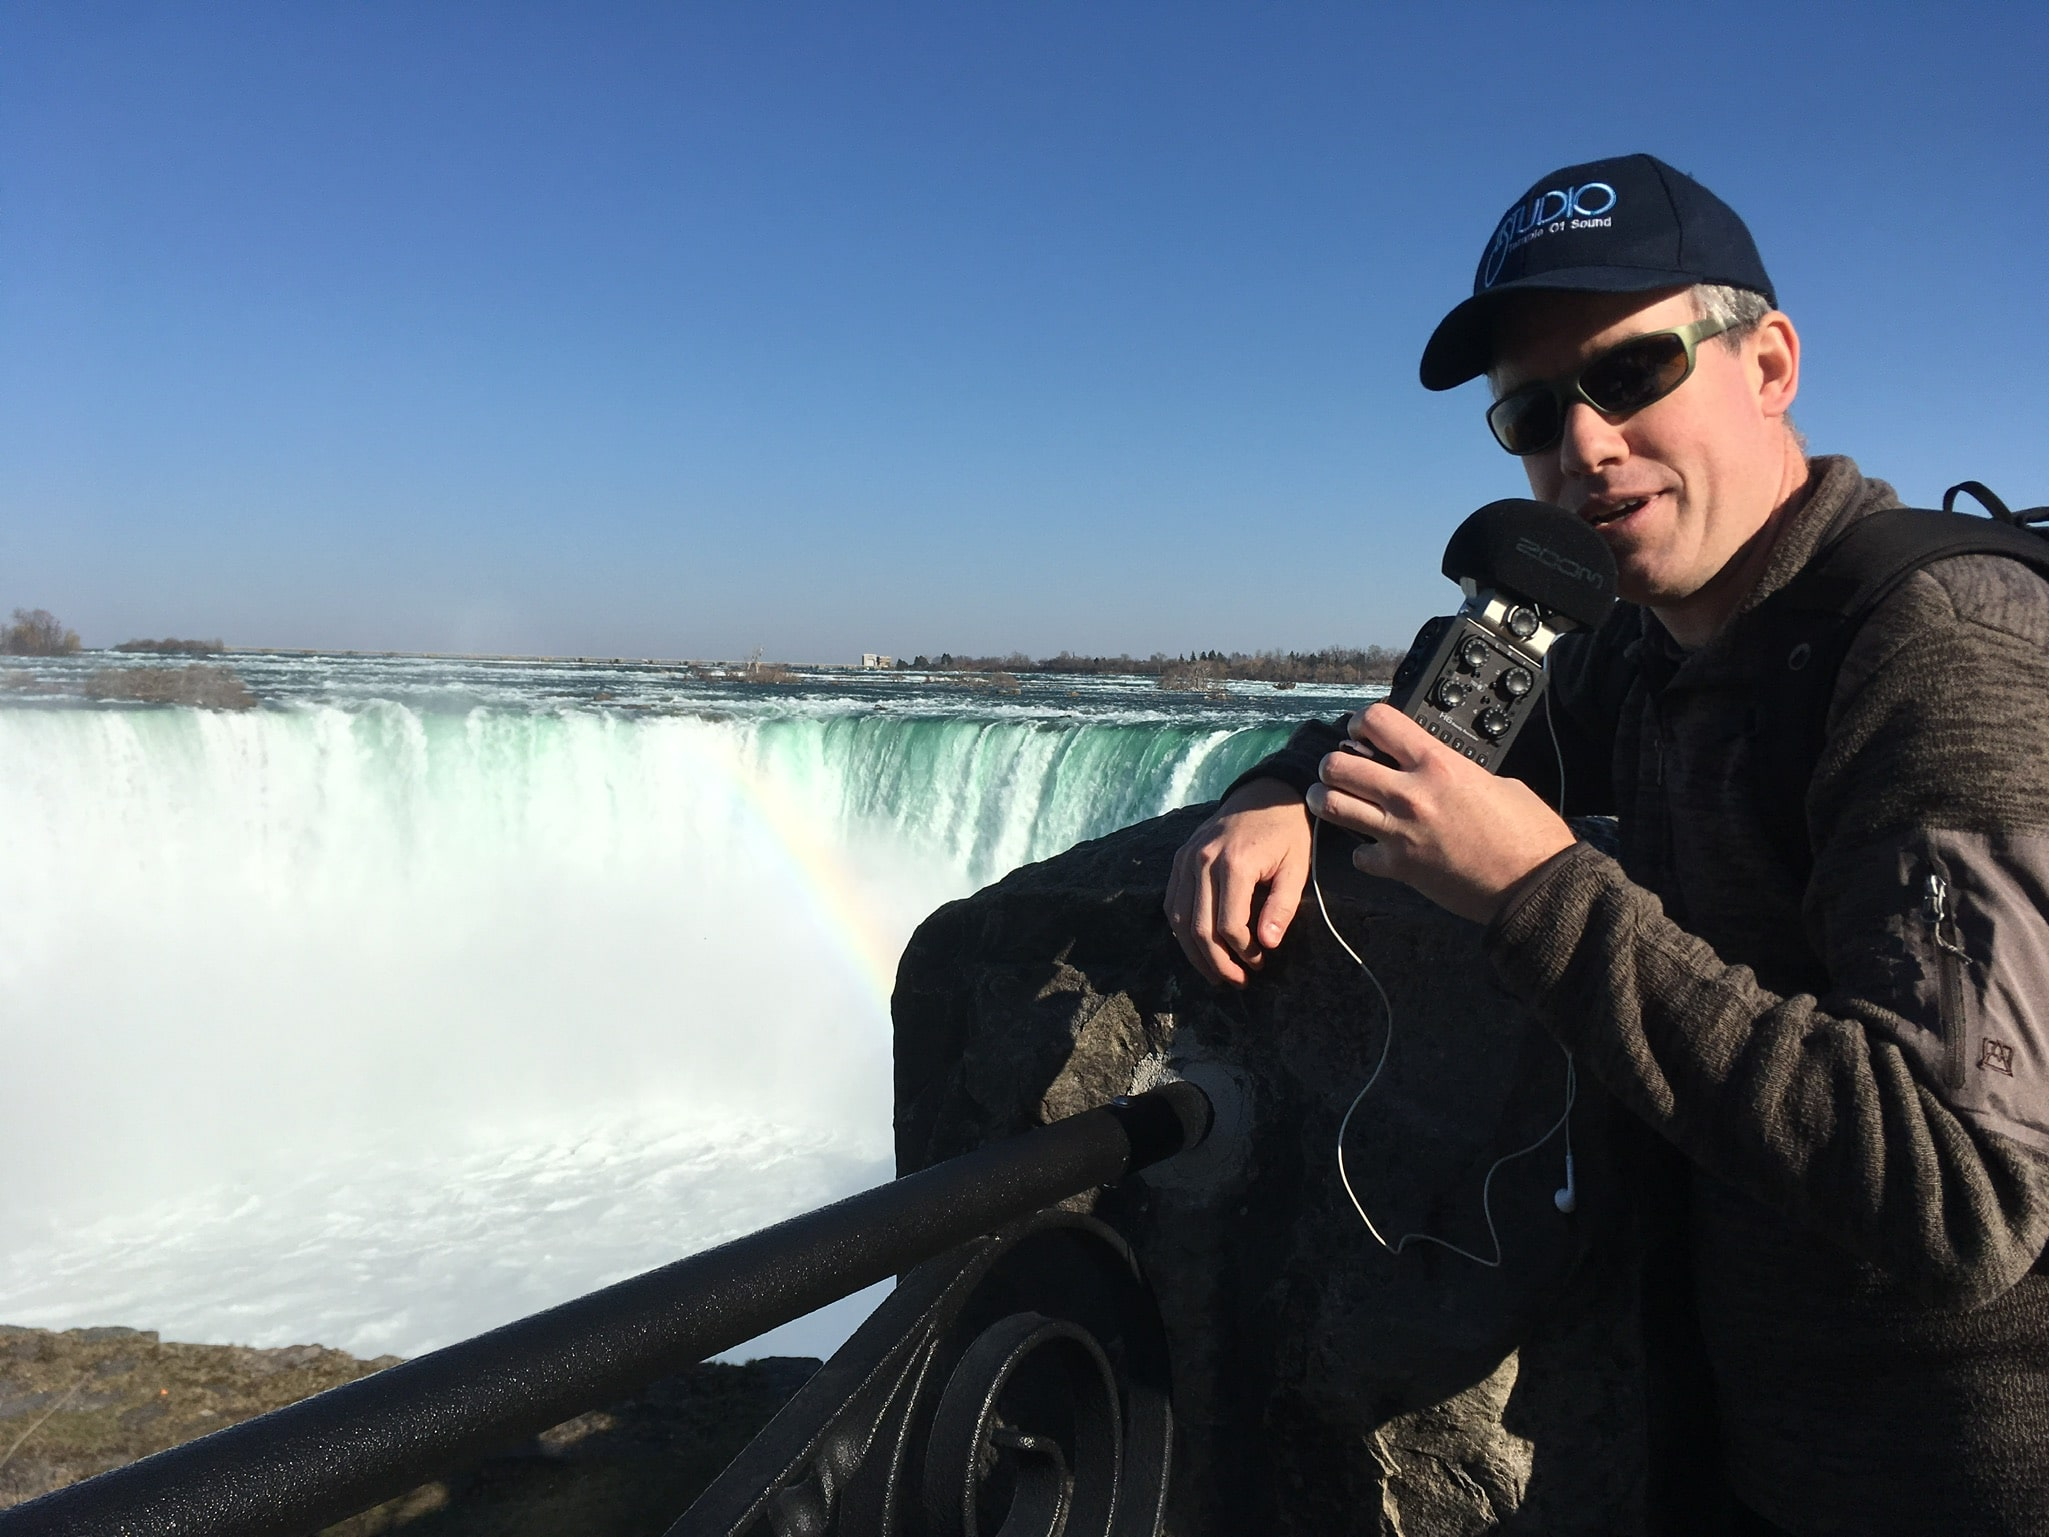 Podcast manager Ted Cragg recording a podcast next to Niagara Falls